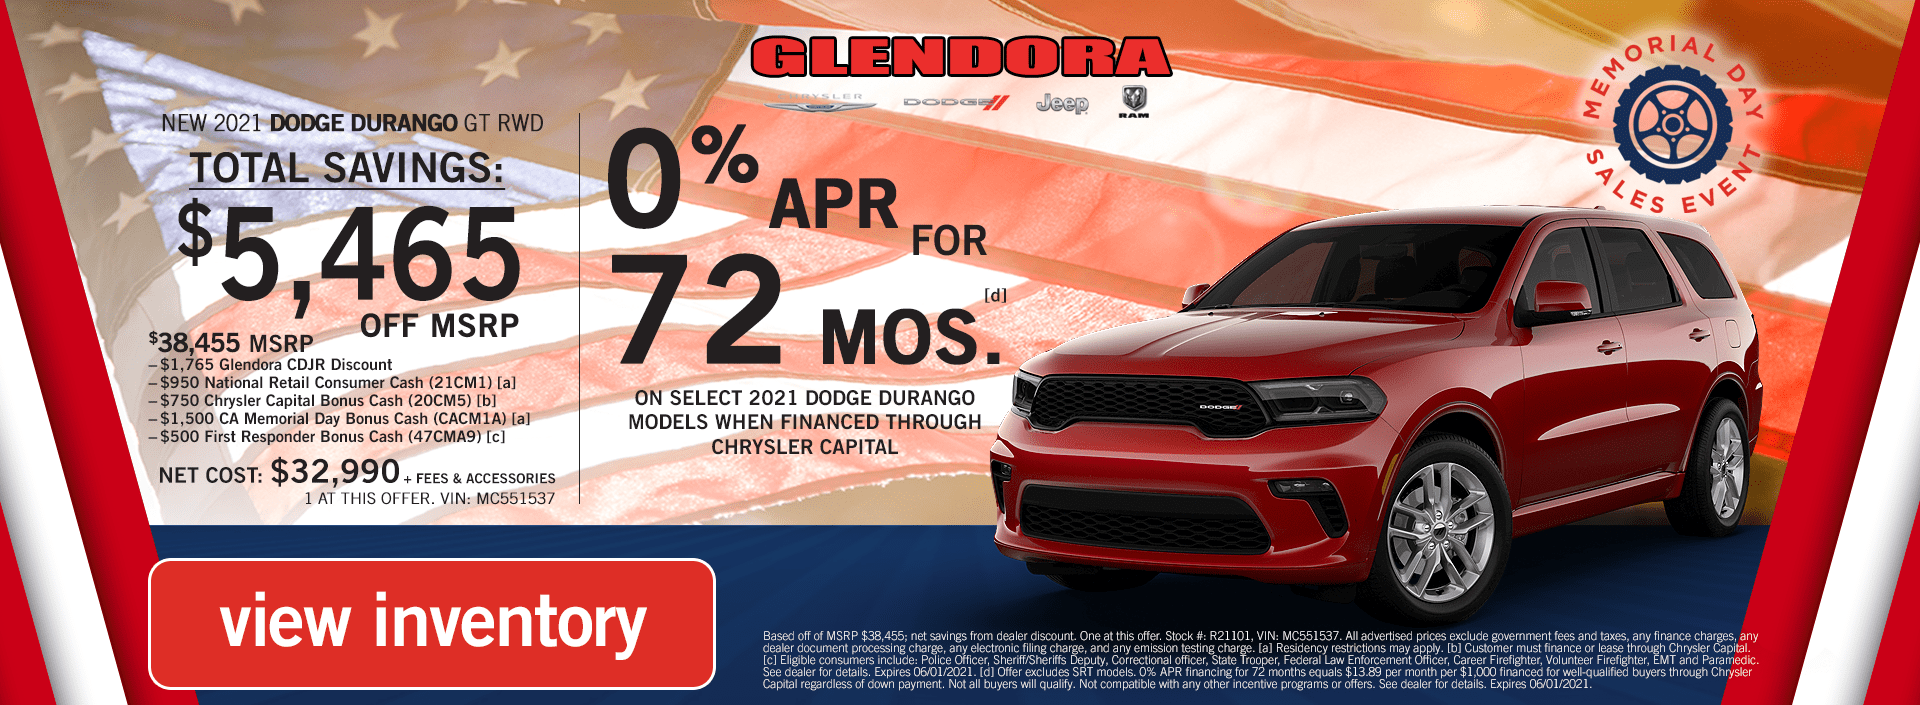 Dodge Durango Deals Memorial Day Sales Event